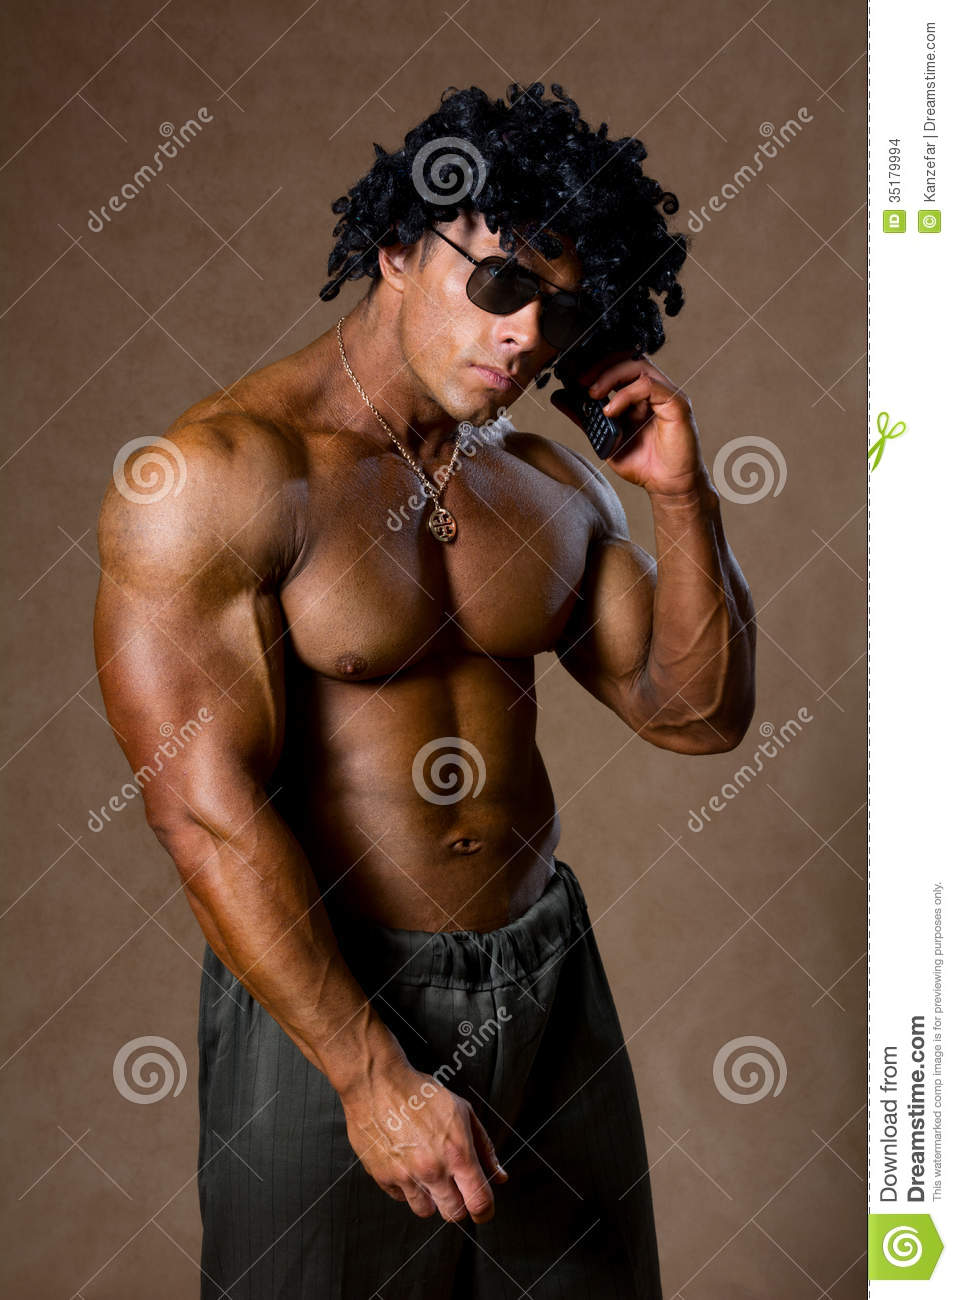 Muscular Man With Curly Hair Talking On A Cell Phone